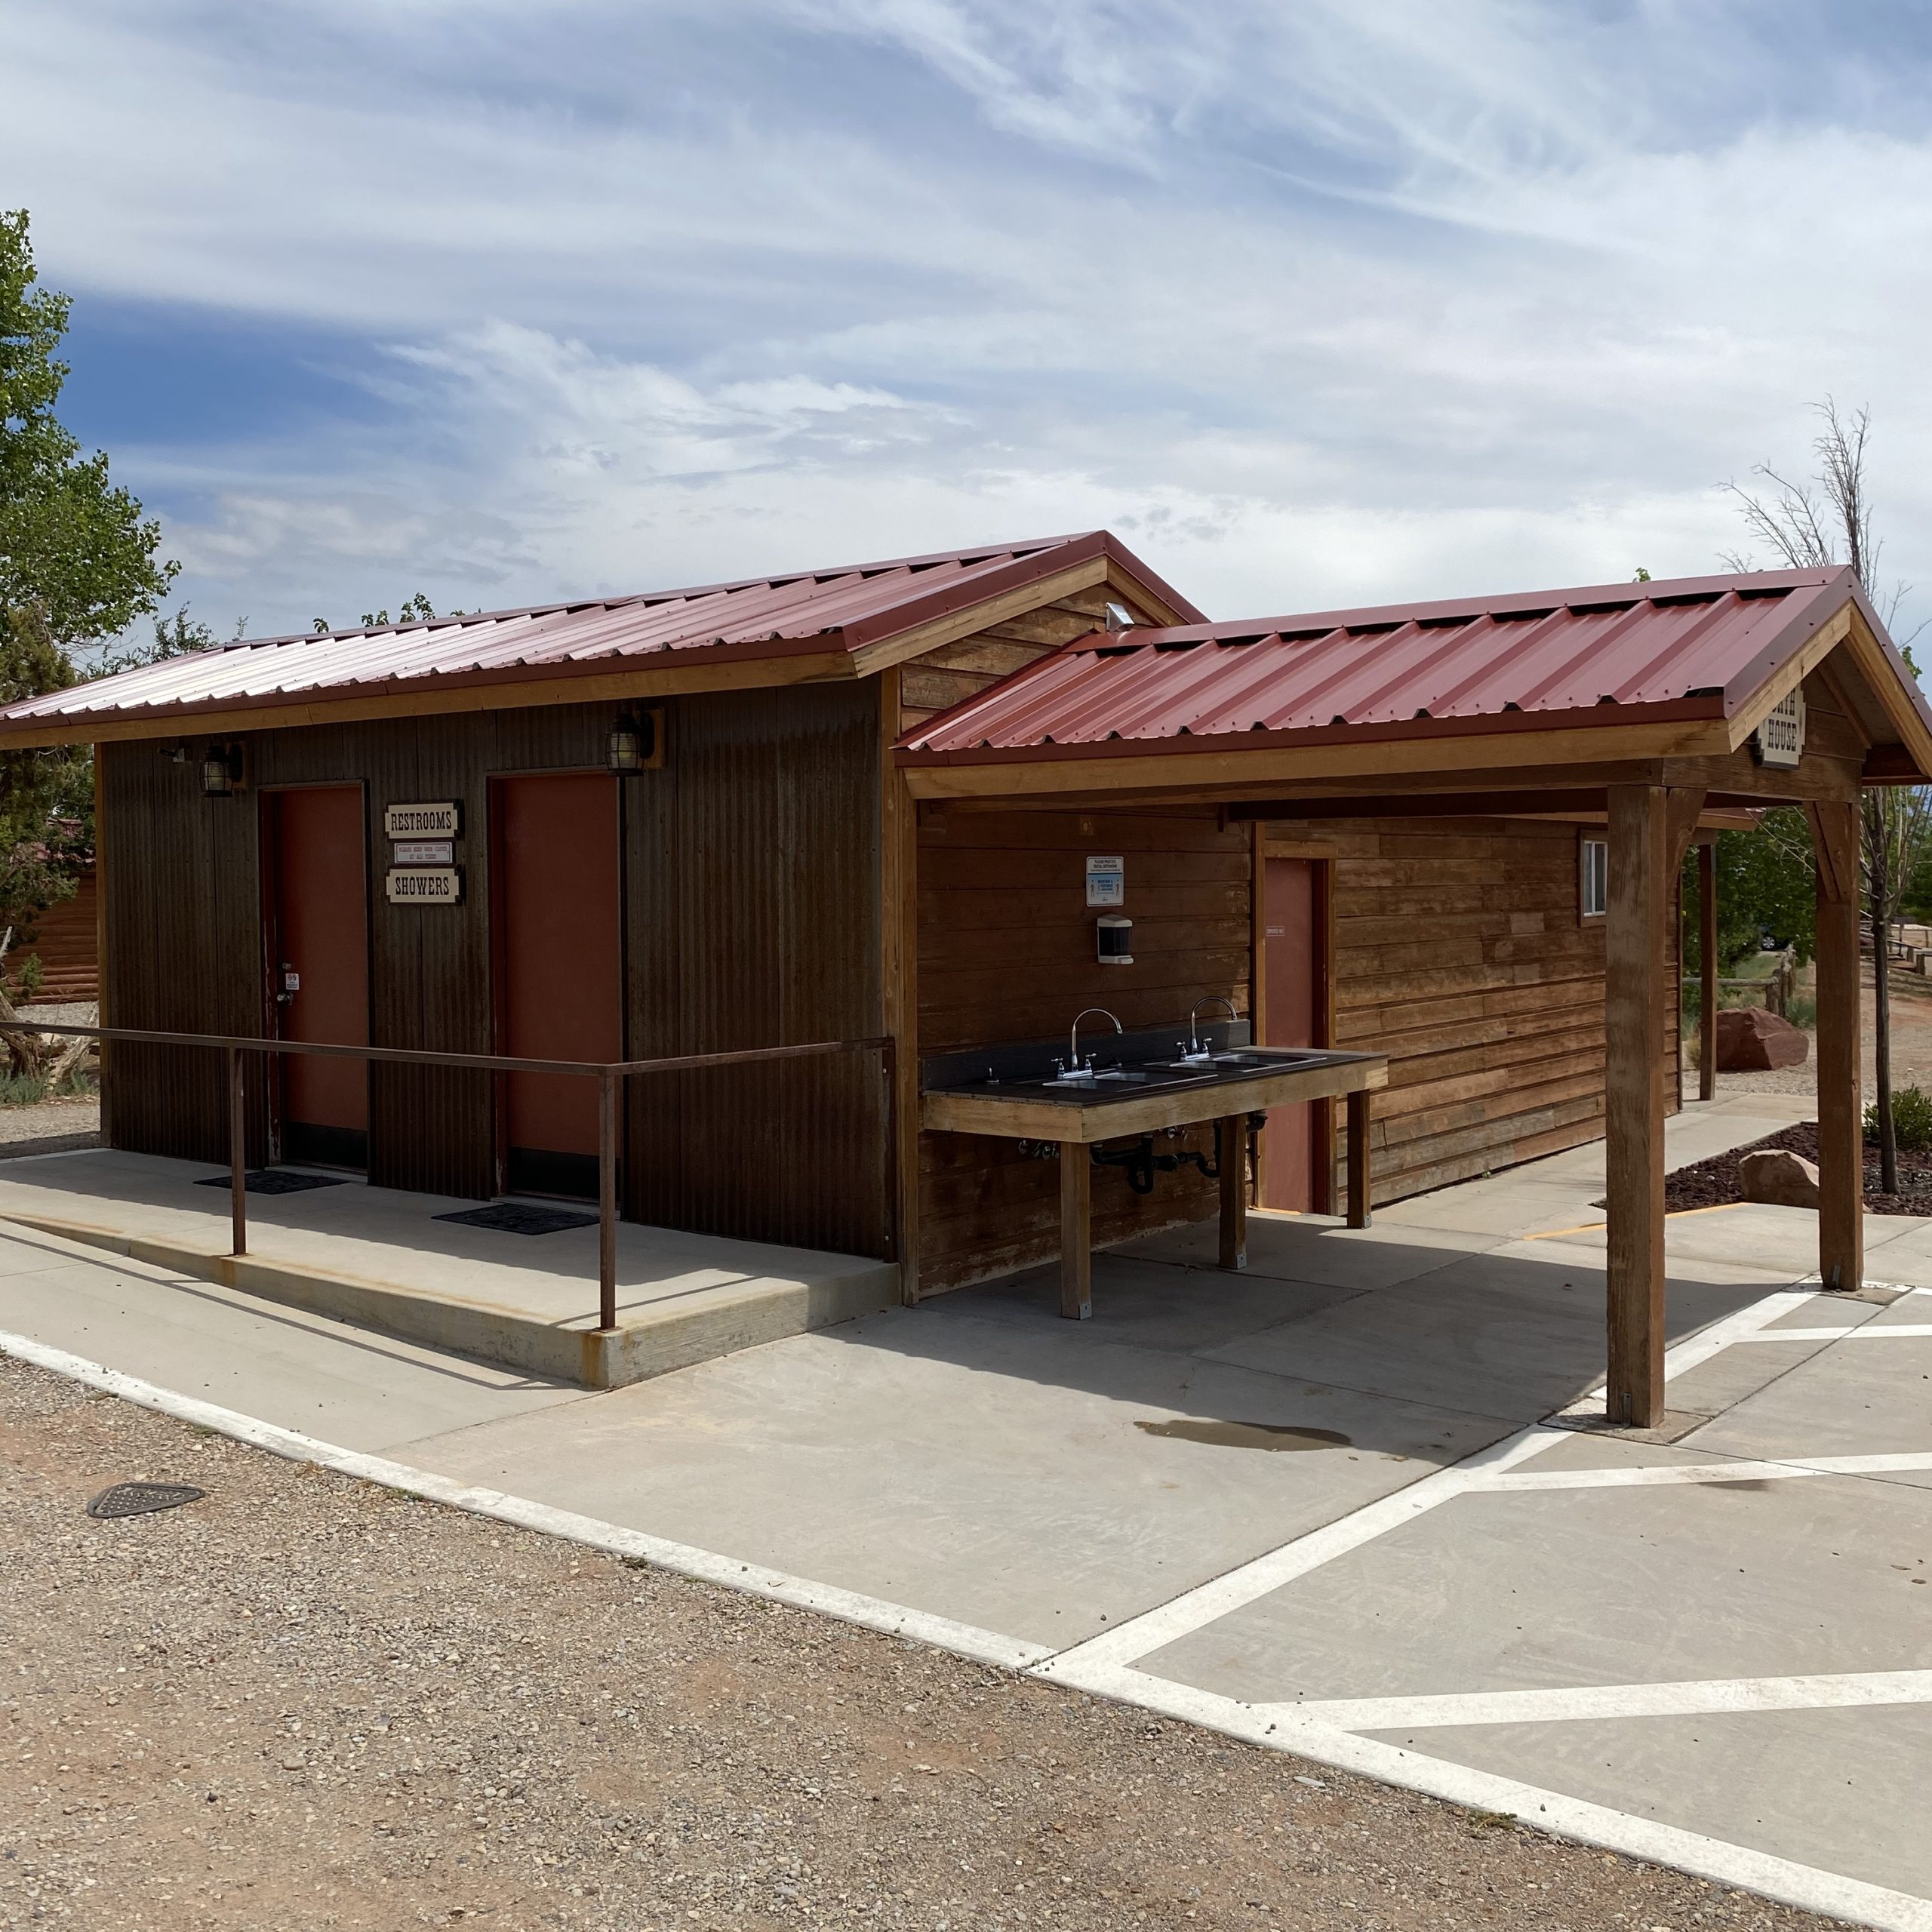 Archview RV Resort & Campground